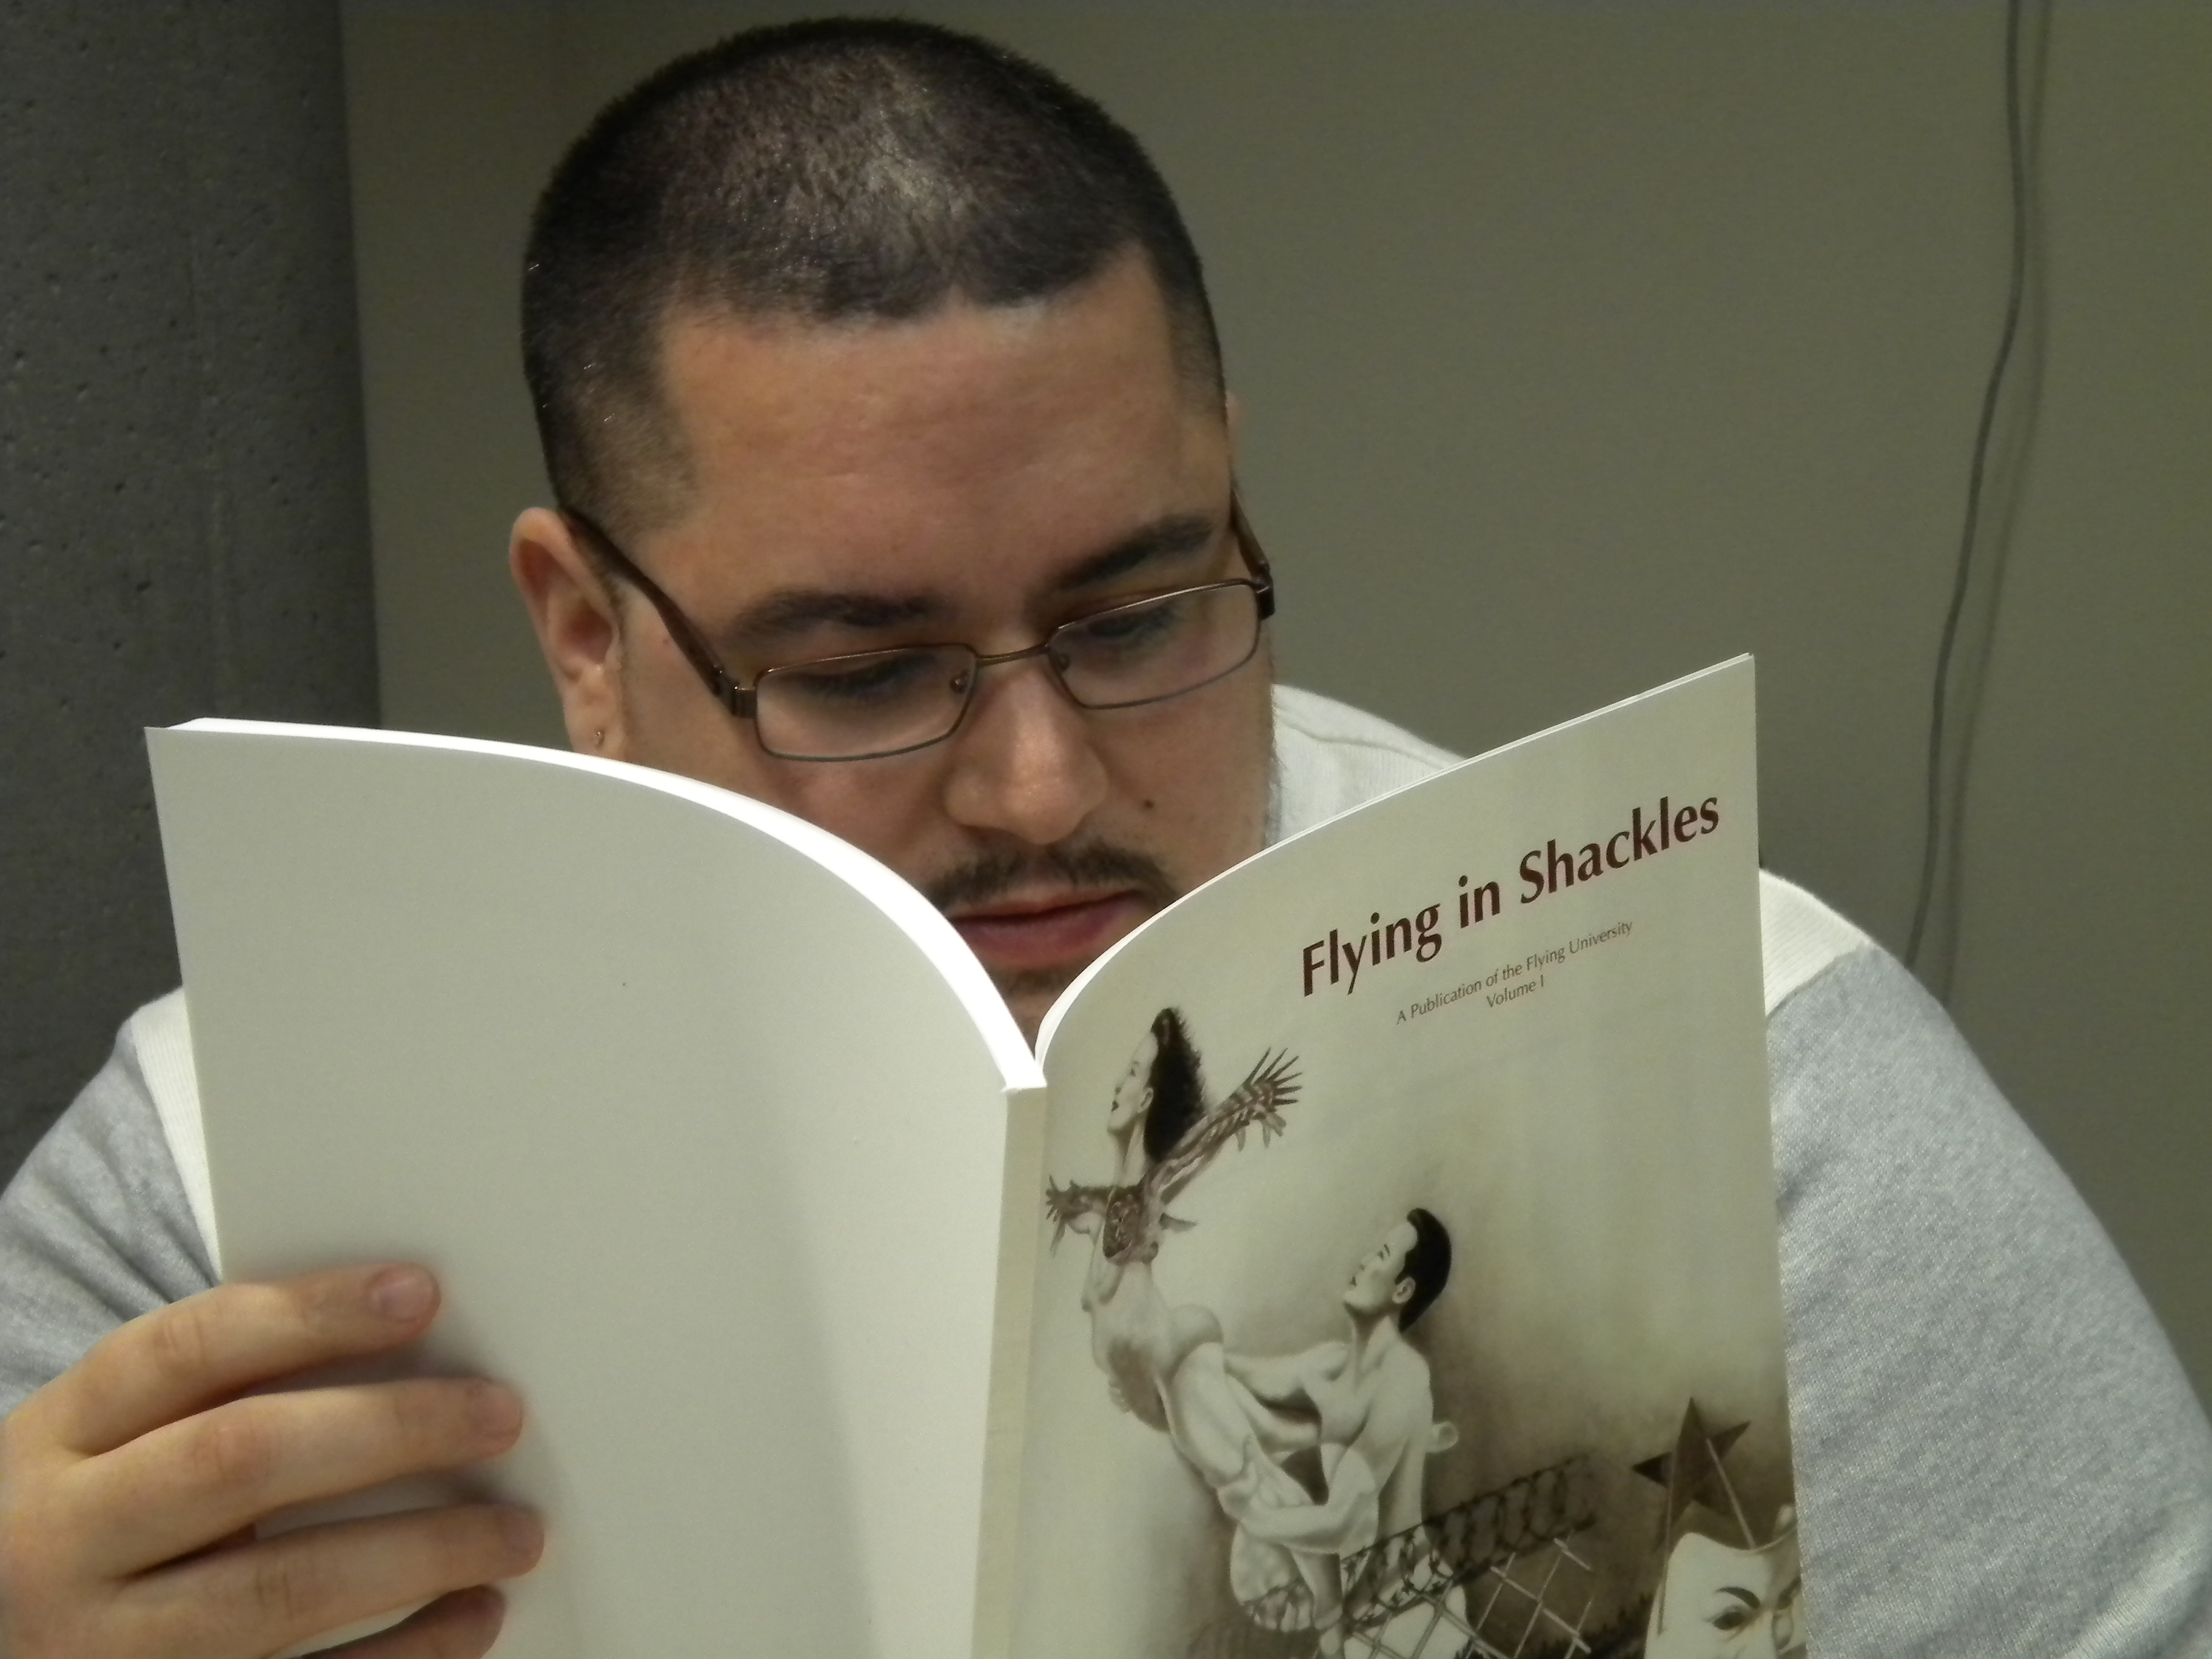 UAS student Marcos Galindo reads an issue of the Flying University literary journal. Galindo is one of the 15 former and current inmates of Lemon Creek Correctional Center to write contributions to the journal. (Photo by Kevin Reagan/ KTOO)